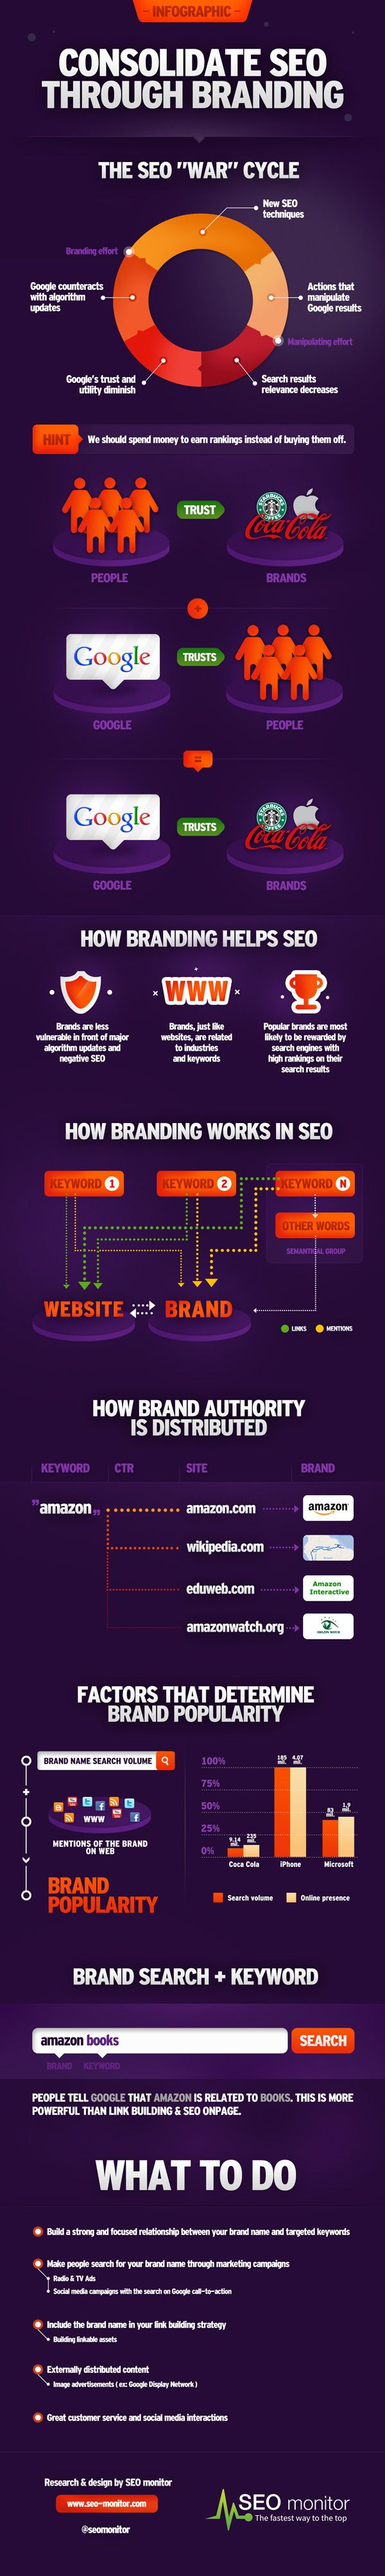 How Branding works in SEO